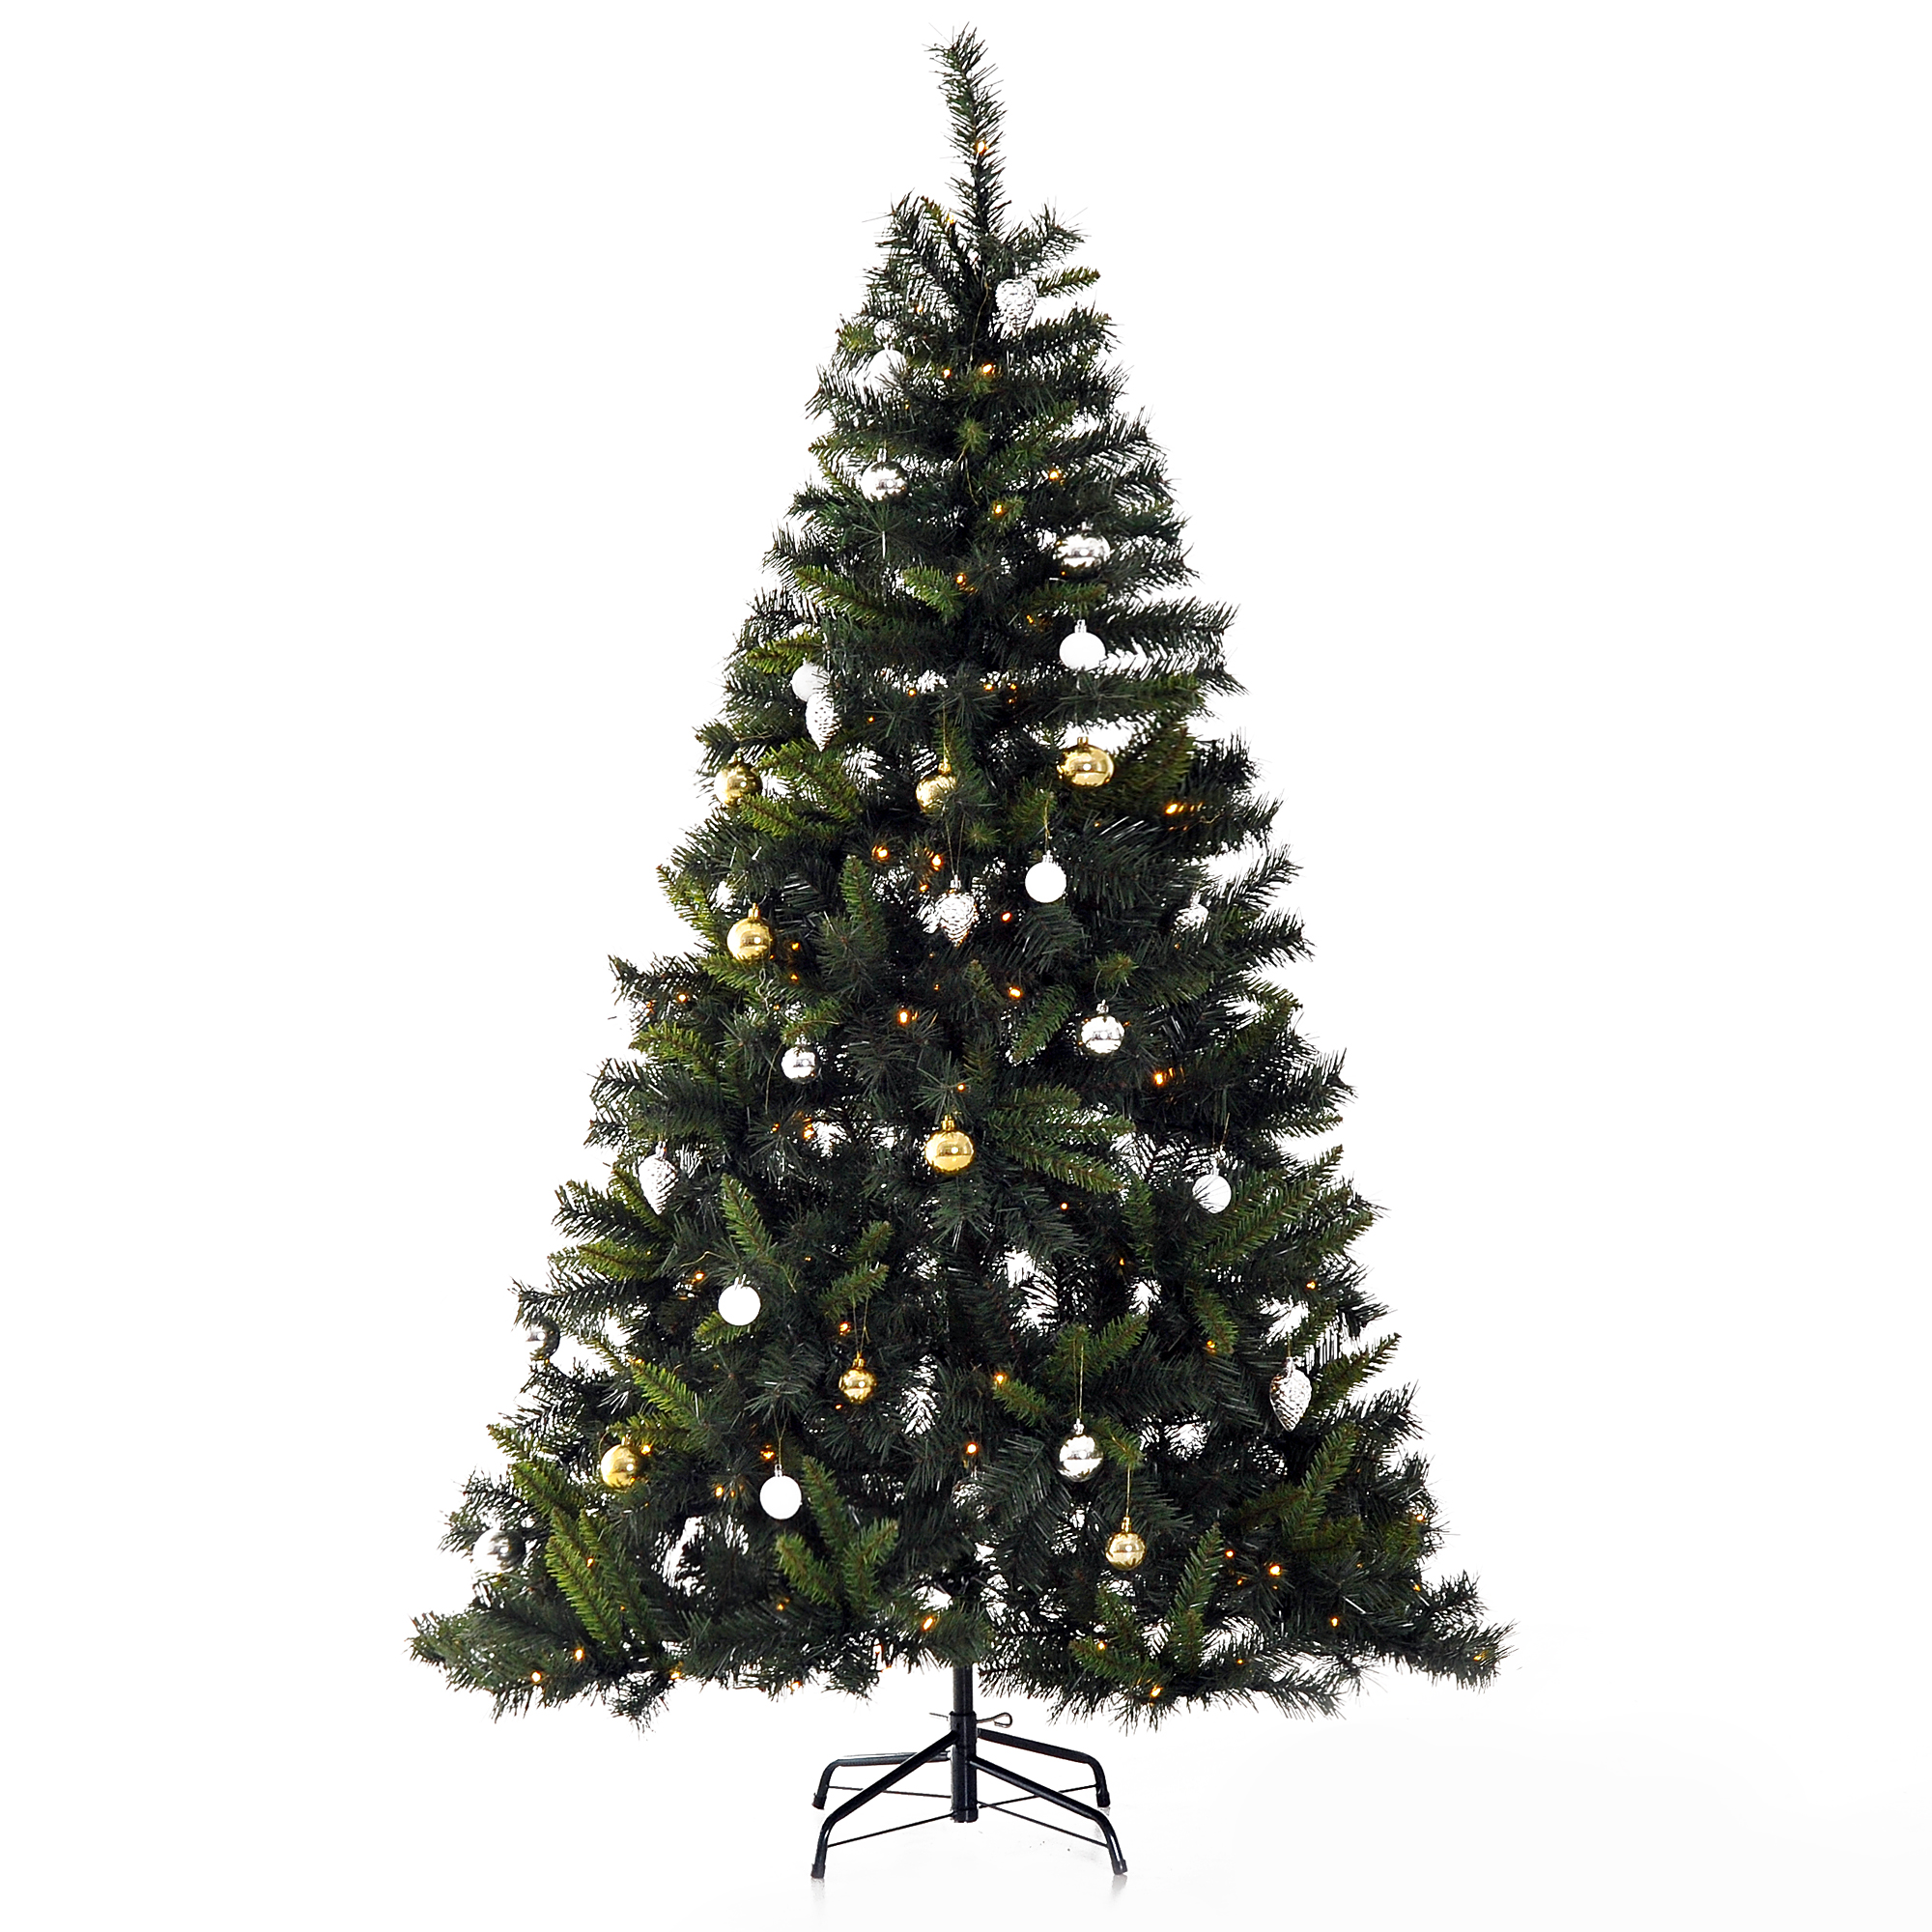 Image of £48.99 HOMCOM Artificial Tree W/ Ornament, 1.8m / 6ft Pre-Lit Christmas 200 LED Xmas Holiday Décor with Decorative Balls Ornament Metal Stand 830-186 5056029806814